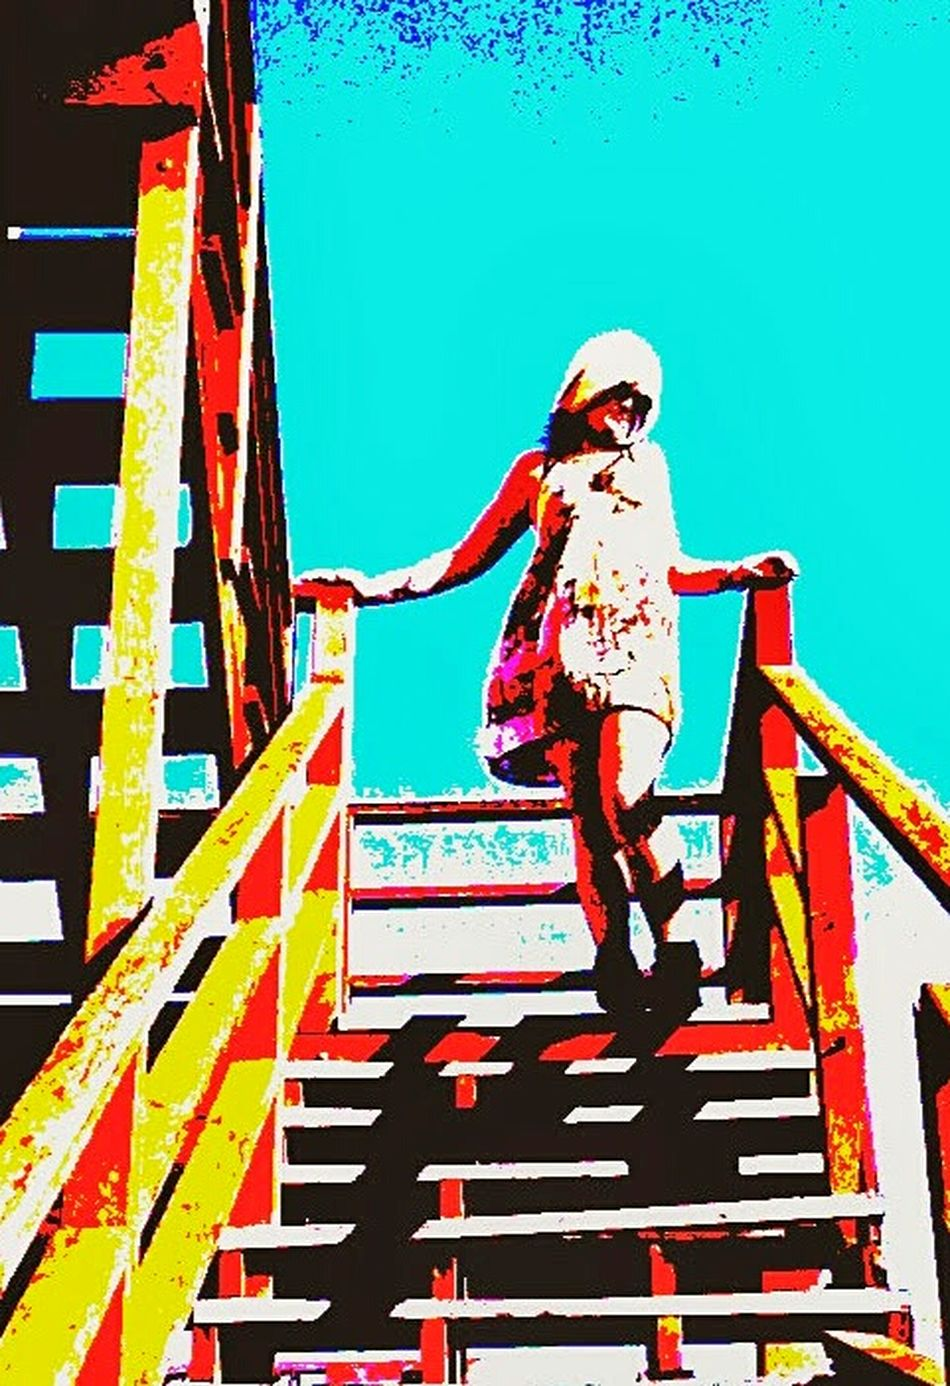 Self P. Outdoors Self Young Adult Female Illuminated Cityscape Architecture Sky Building Exterior Built Structure One Person